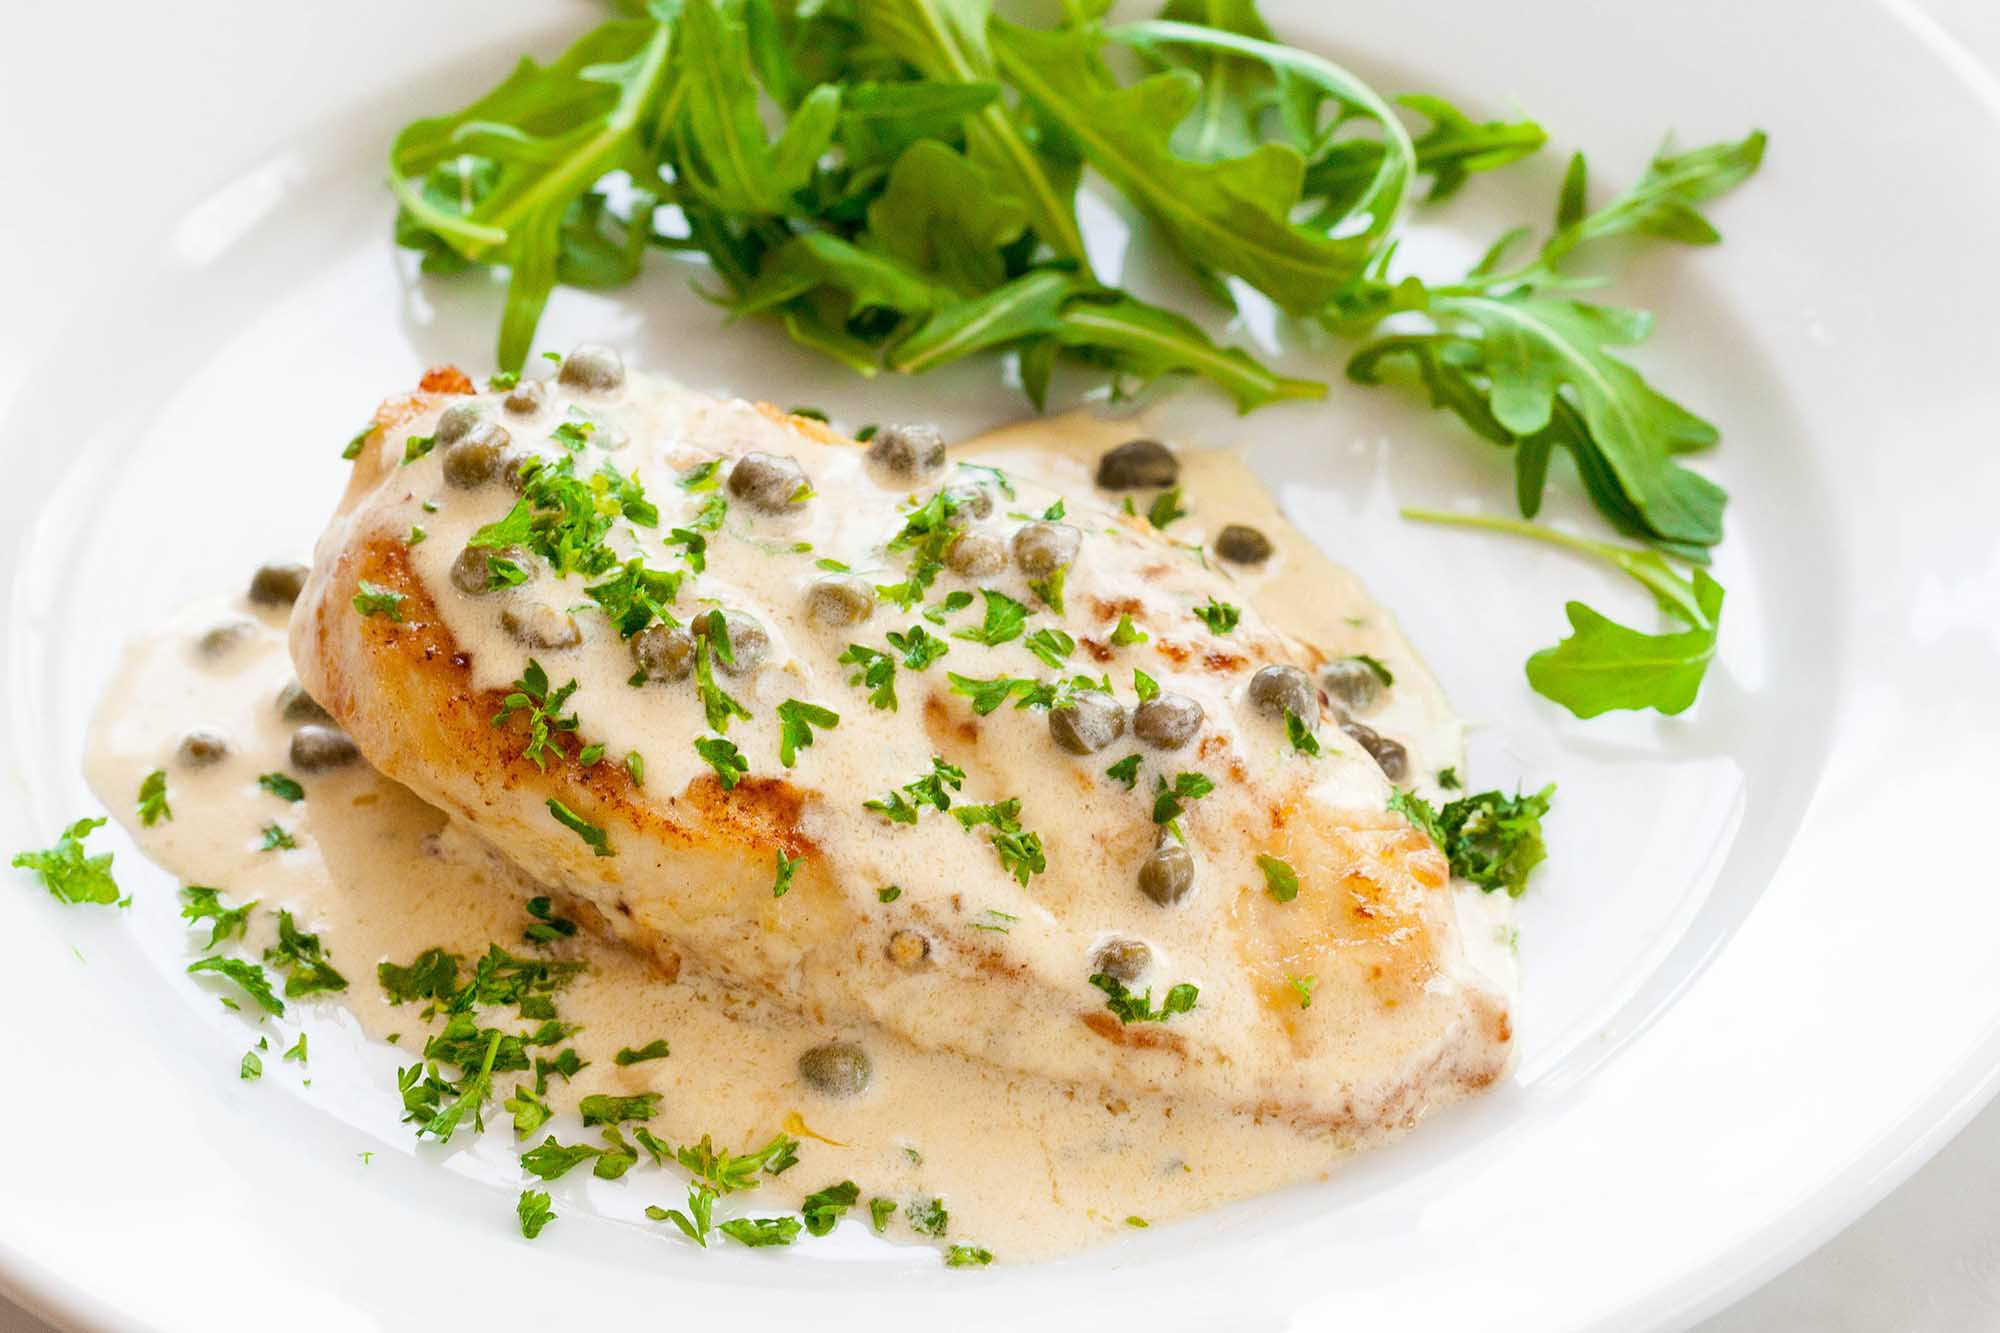 Chicken breasts recipe in green sauce with mustard